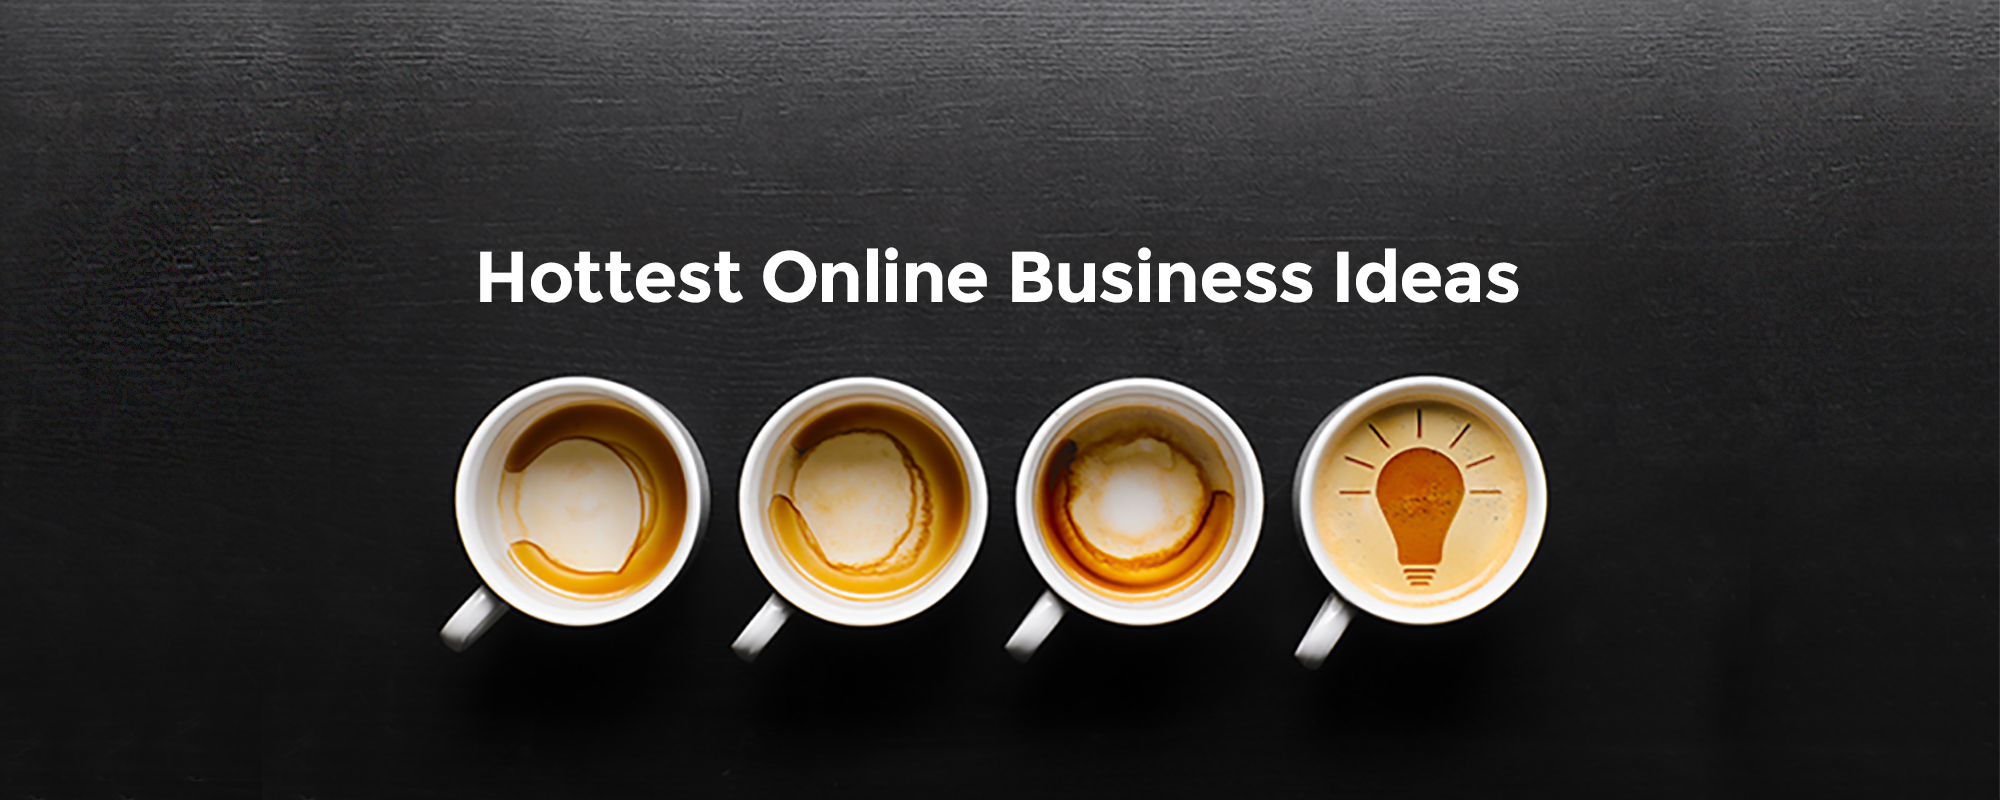 Hottest Service and Data Driven Online Businesses of 2015 and Beyond